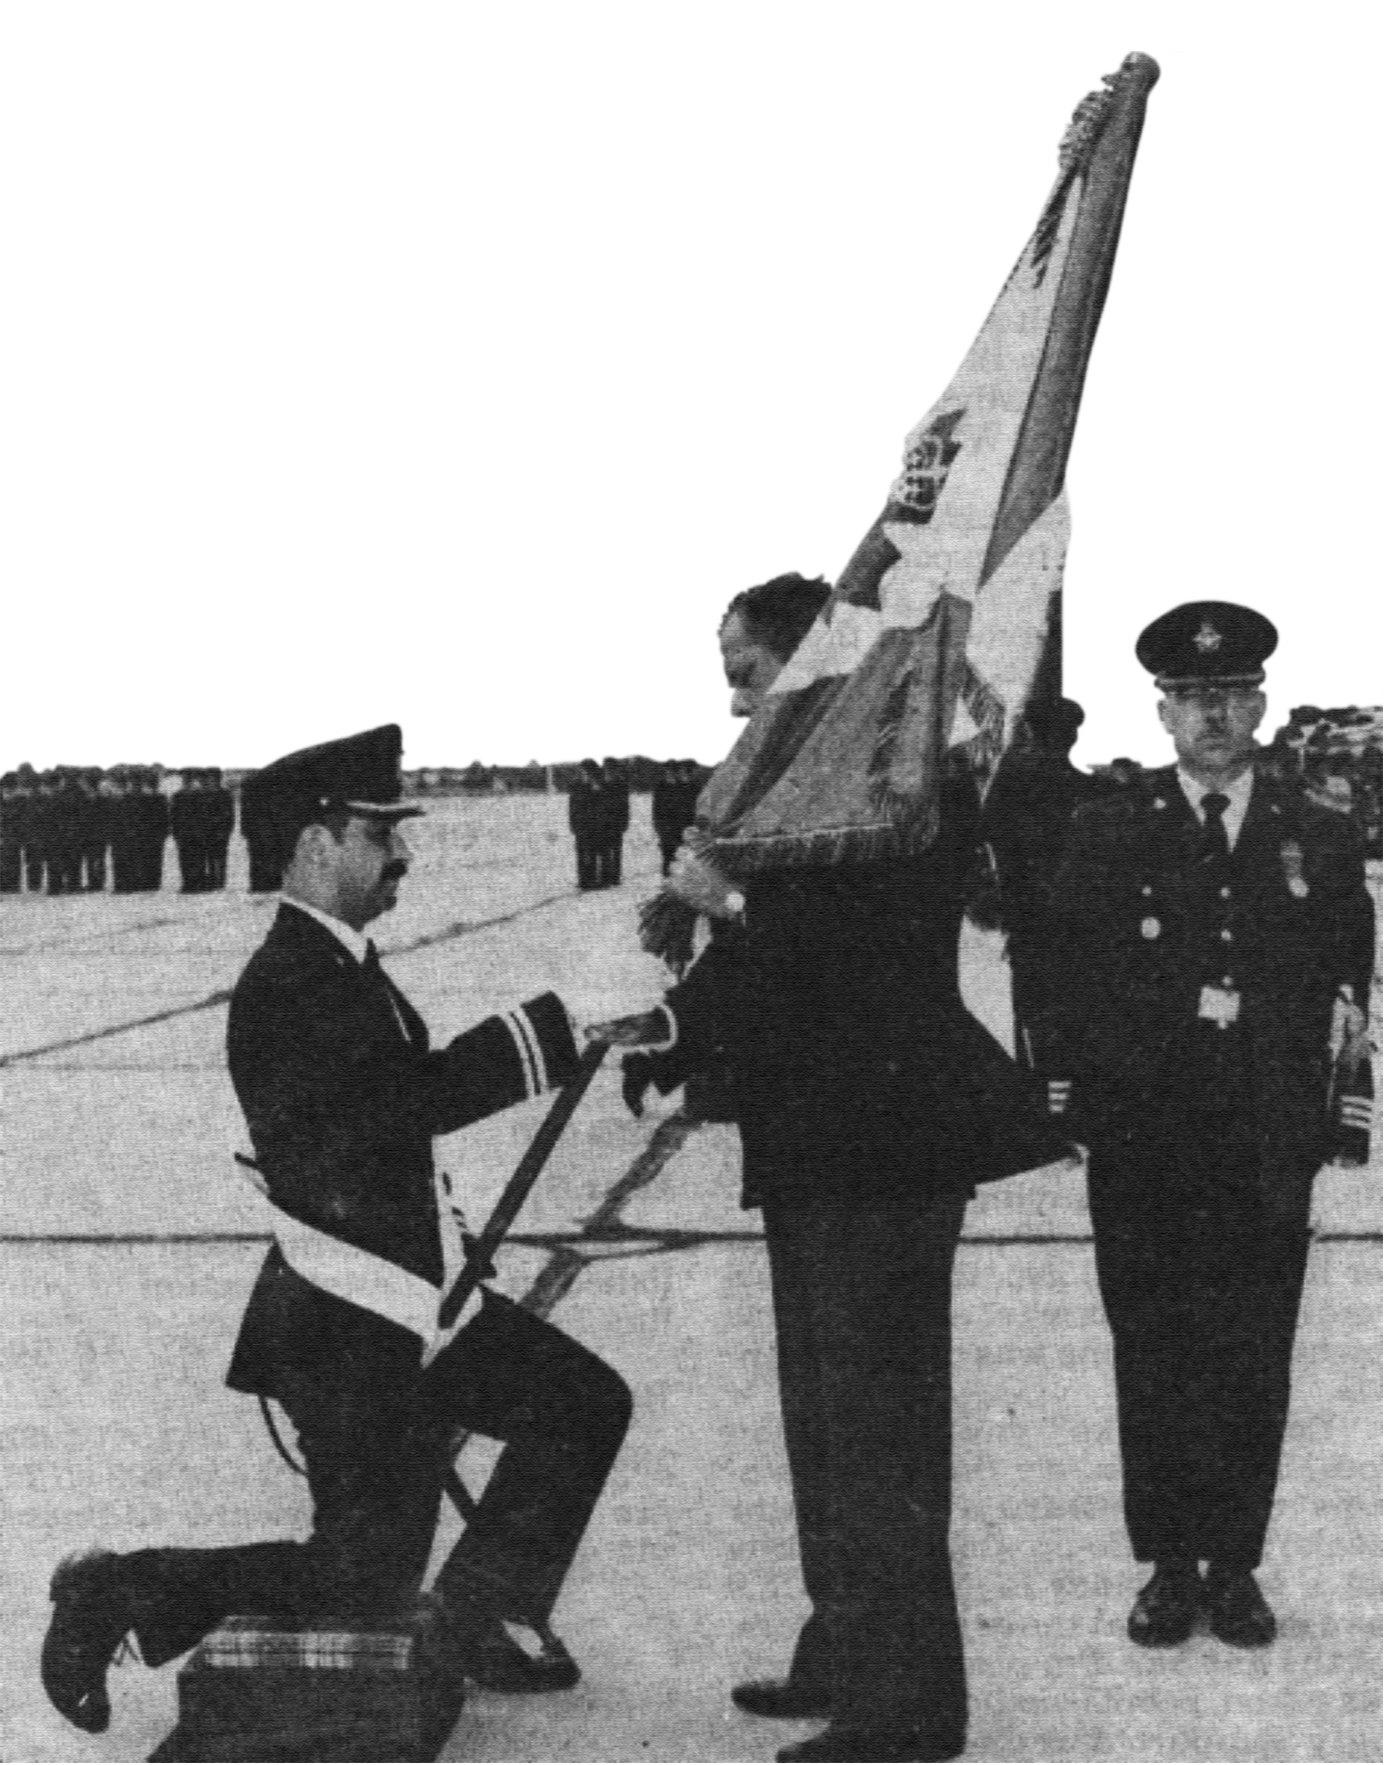 Following the unification of the Canadian Armed Forces, the Air Force received its second stand of Colours, reflecting its identity as Air Command, on July 31, 1982, in Winnipeg, Manitoba. Here, Governor General Ed Schreyer presents the Queen's Colour. PHOTO: DND